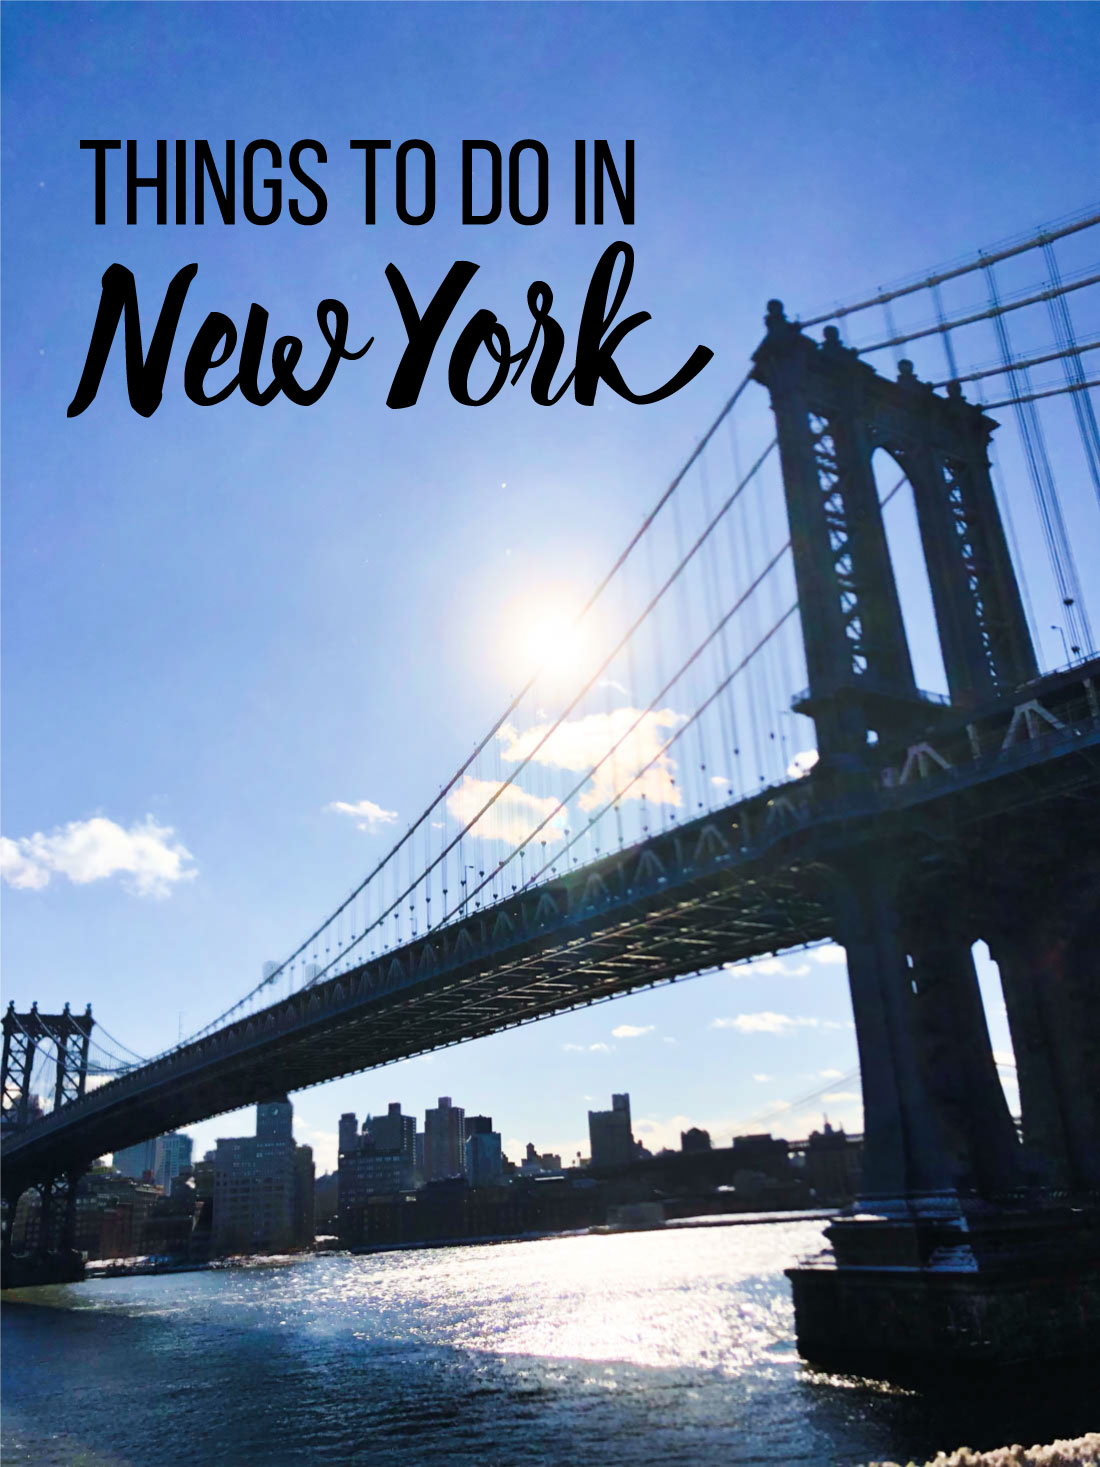 Things to do in new york for Stuff to see in nyc